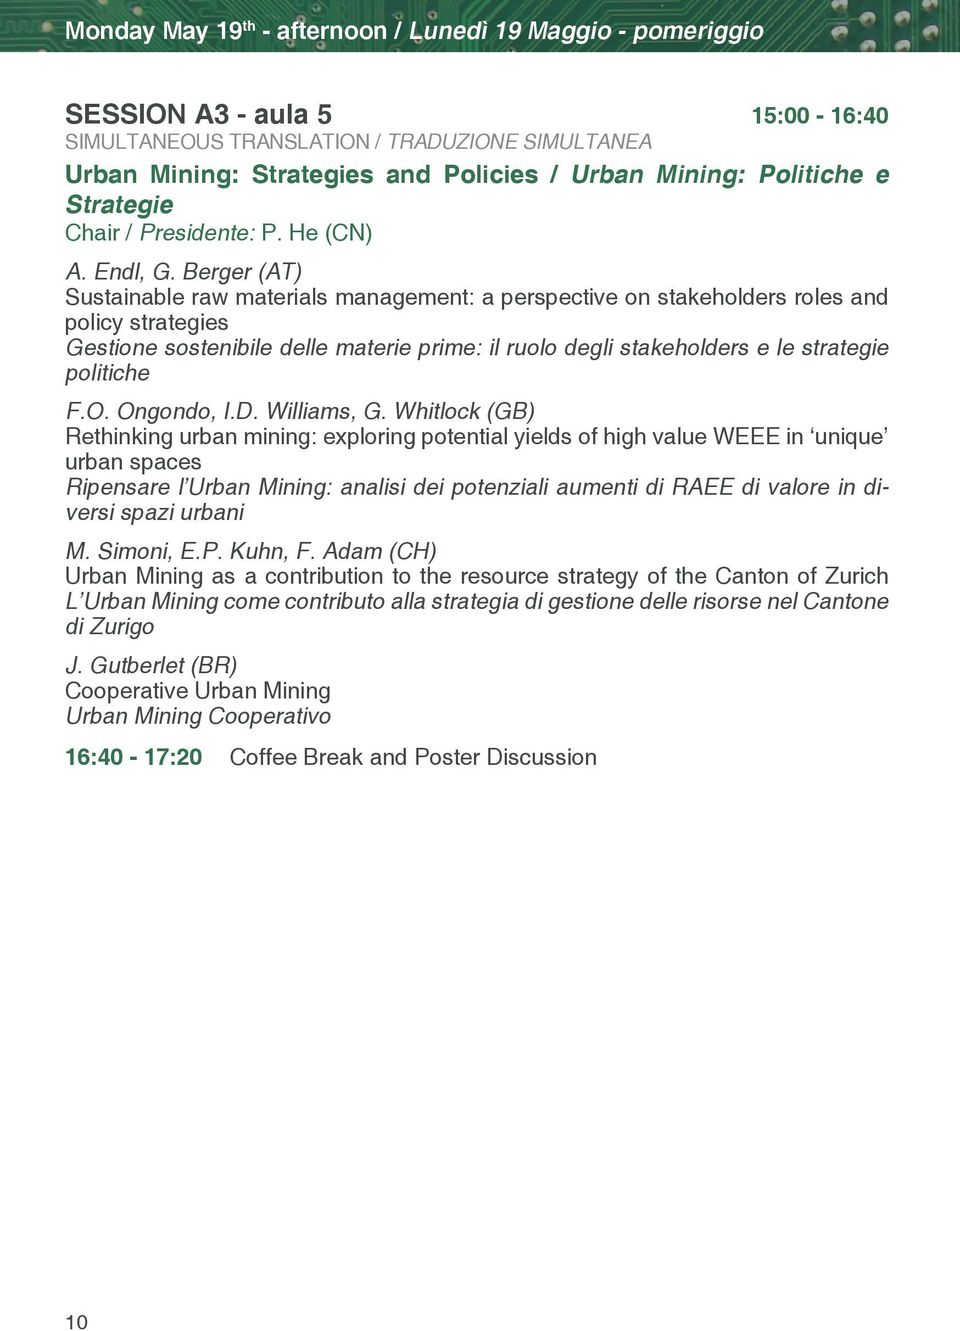 Berger (AT) Sustainable raw materials management: a perspective on stakeholders roles and policy strategies Gestione sostenibile delle materie prime: il ruolo degli stakeholders e le strategie